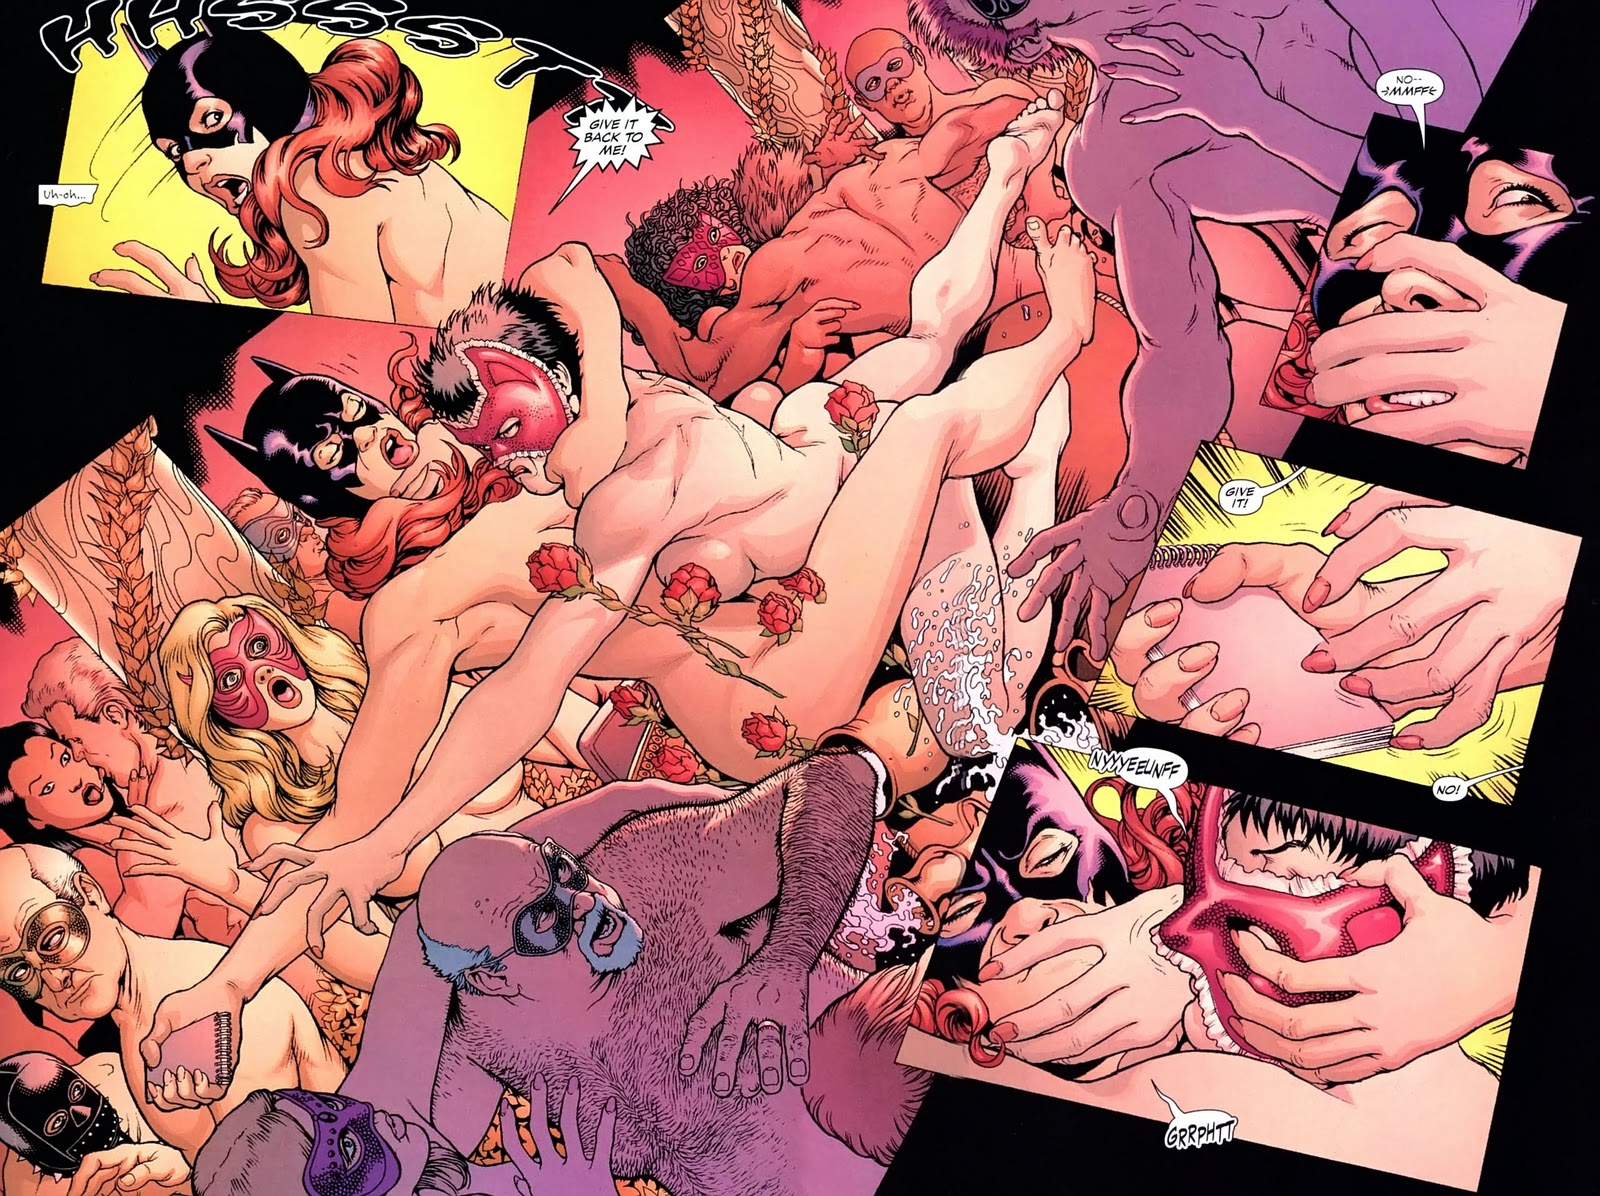 Is Apparently Really Batgirl Wrestling Catwoman In The Nude